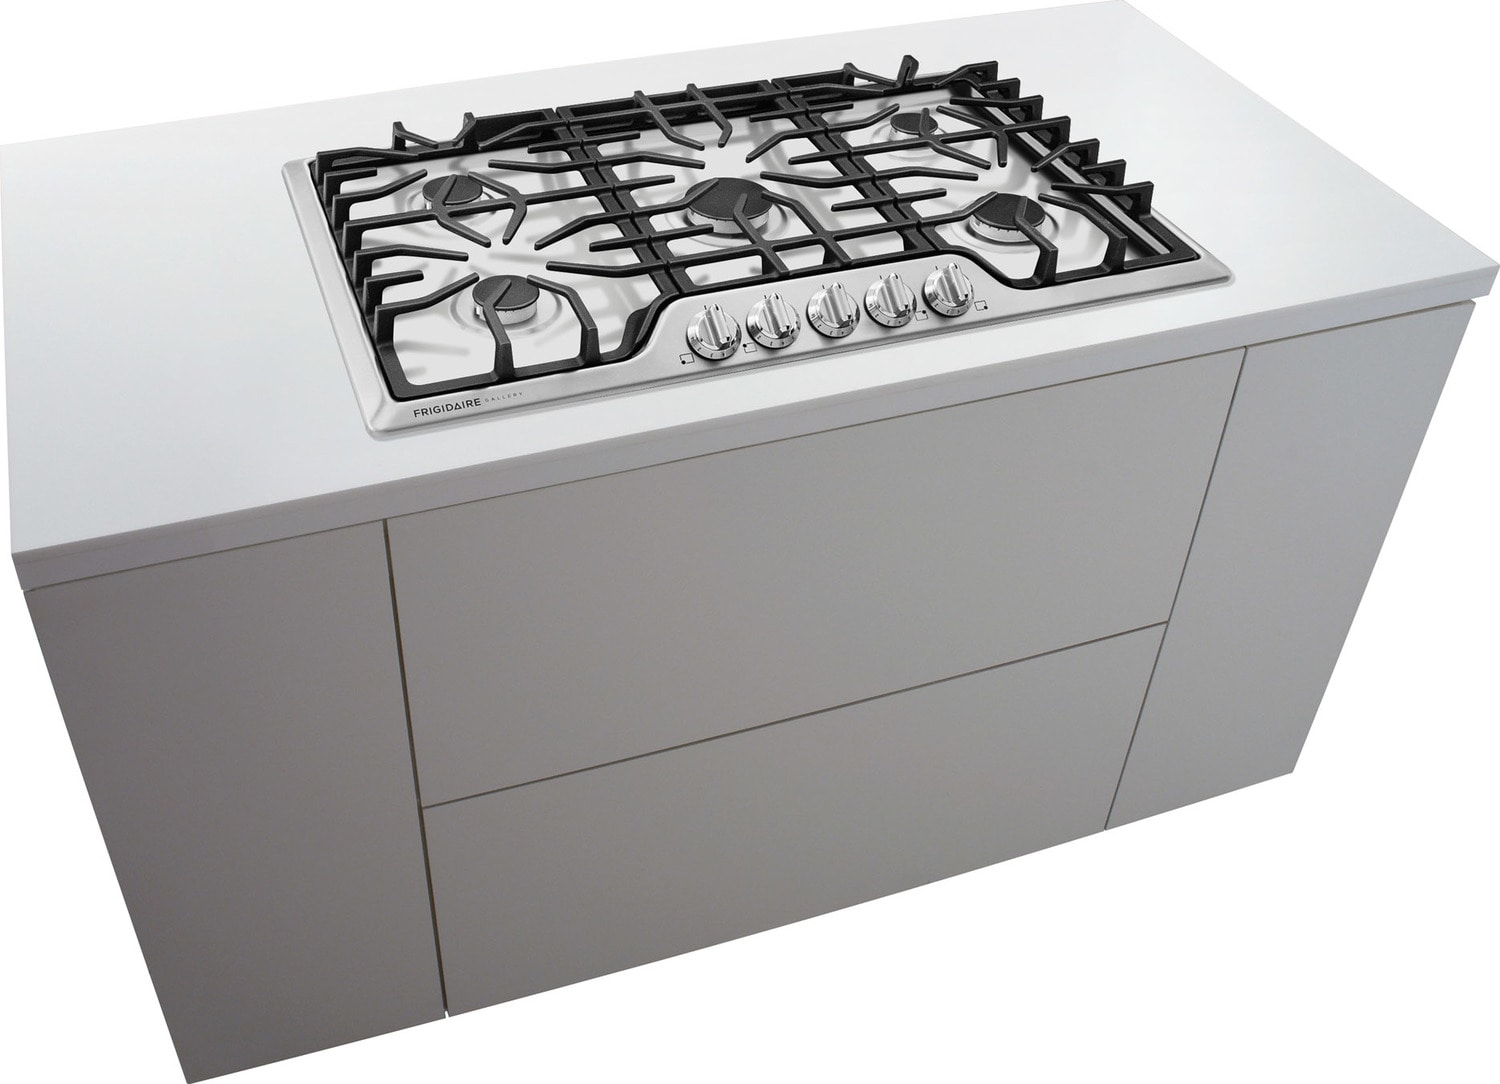 frigidaire gallery stainless steel gas cooktop fggc3645qs leon 39 s. Black Bedroom Furniture Sets. Home Design Ideas